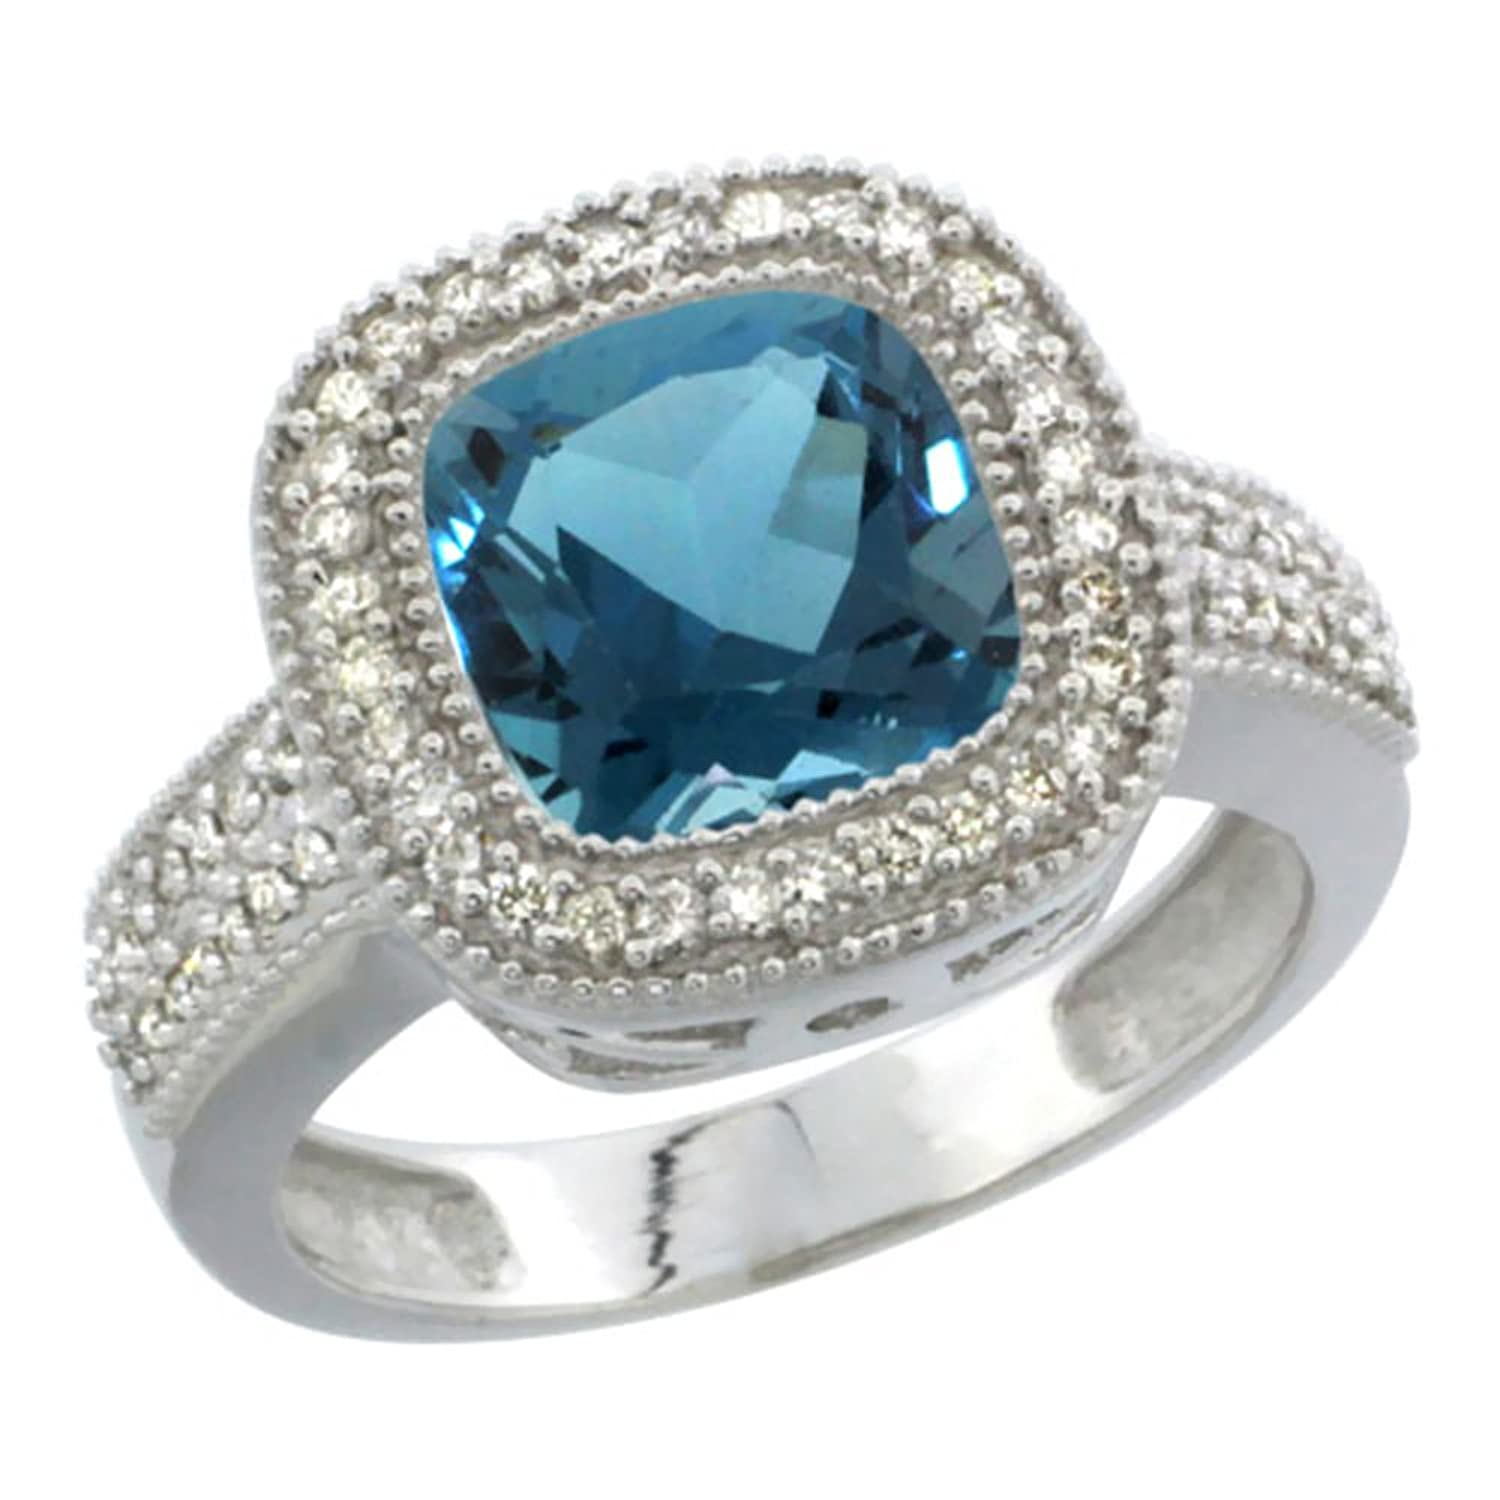 10K White Gold Natural London Blue Topaz Ring Cushion-cut 9x9mm Diamond Accent, sizes 5-10